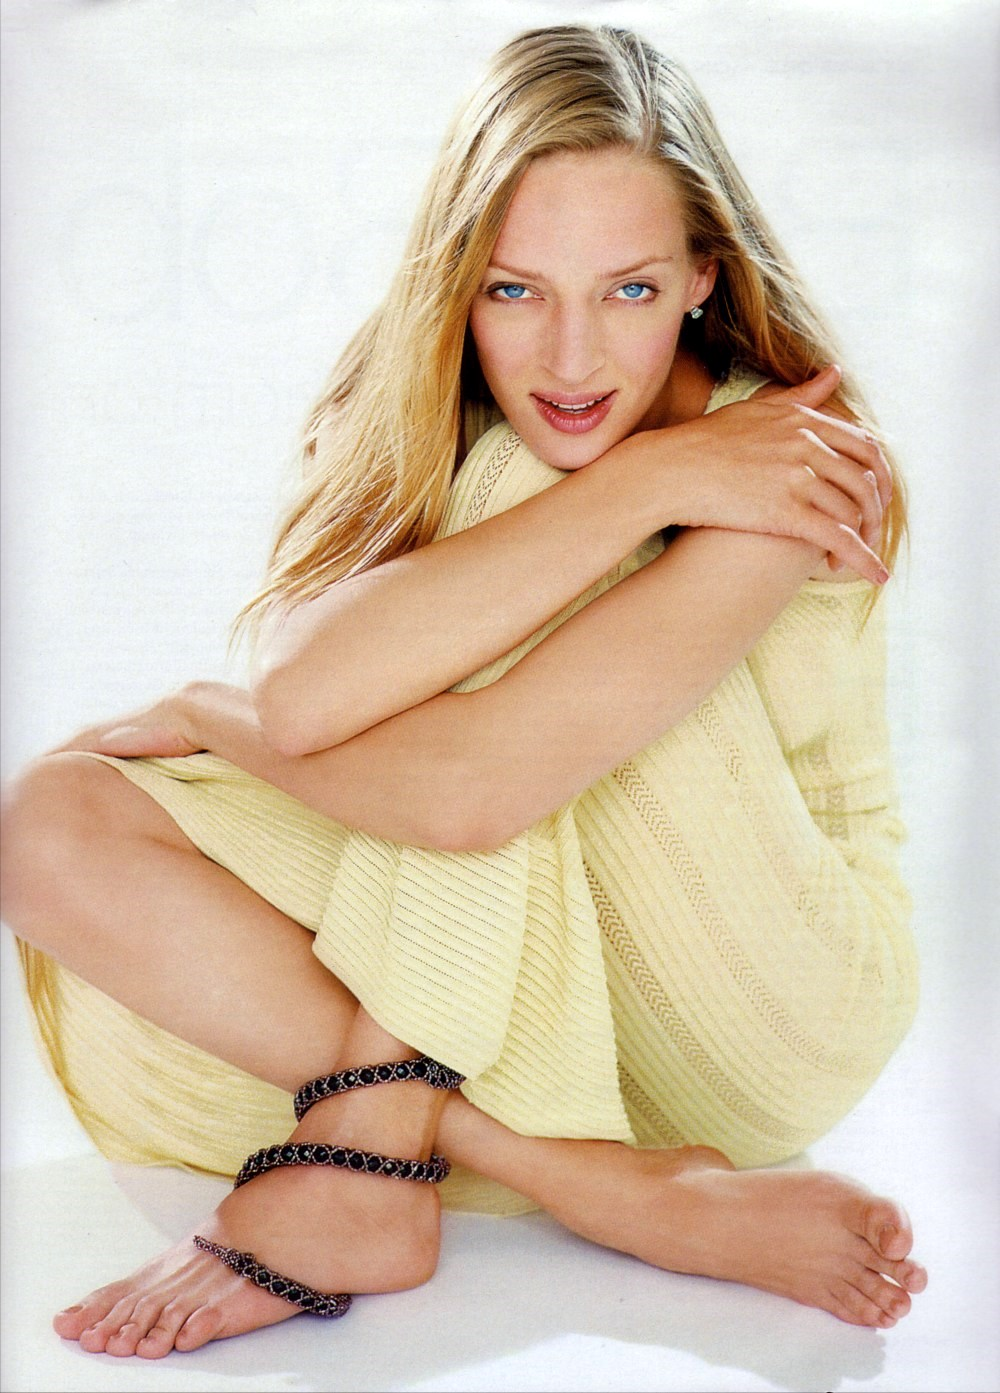 Feet Uma Thurman nudes (74 foto and video), Ass, Hot, Instagram, in bikini 2019